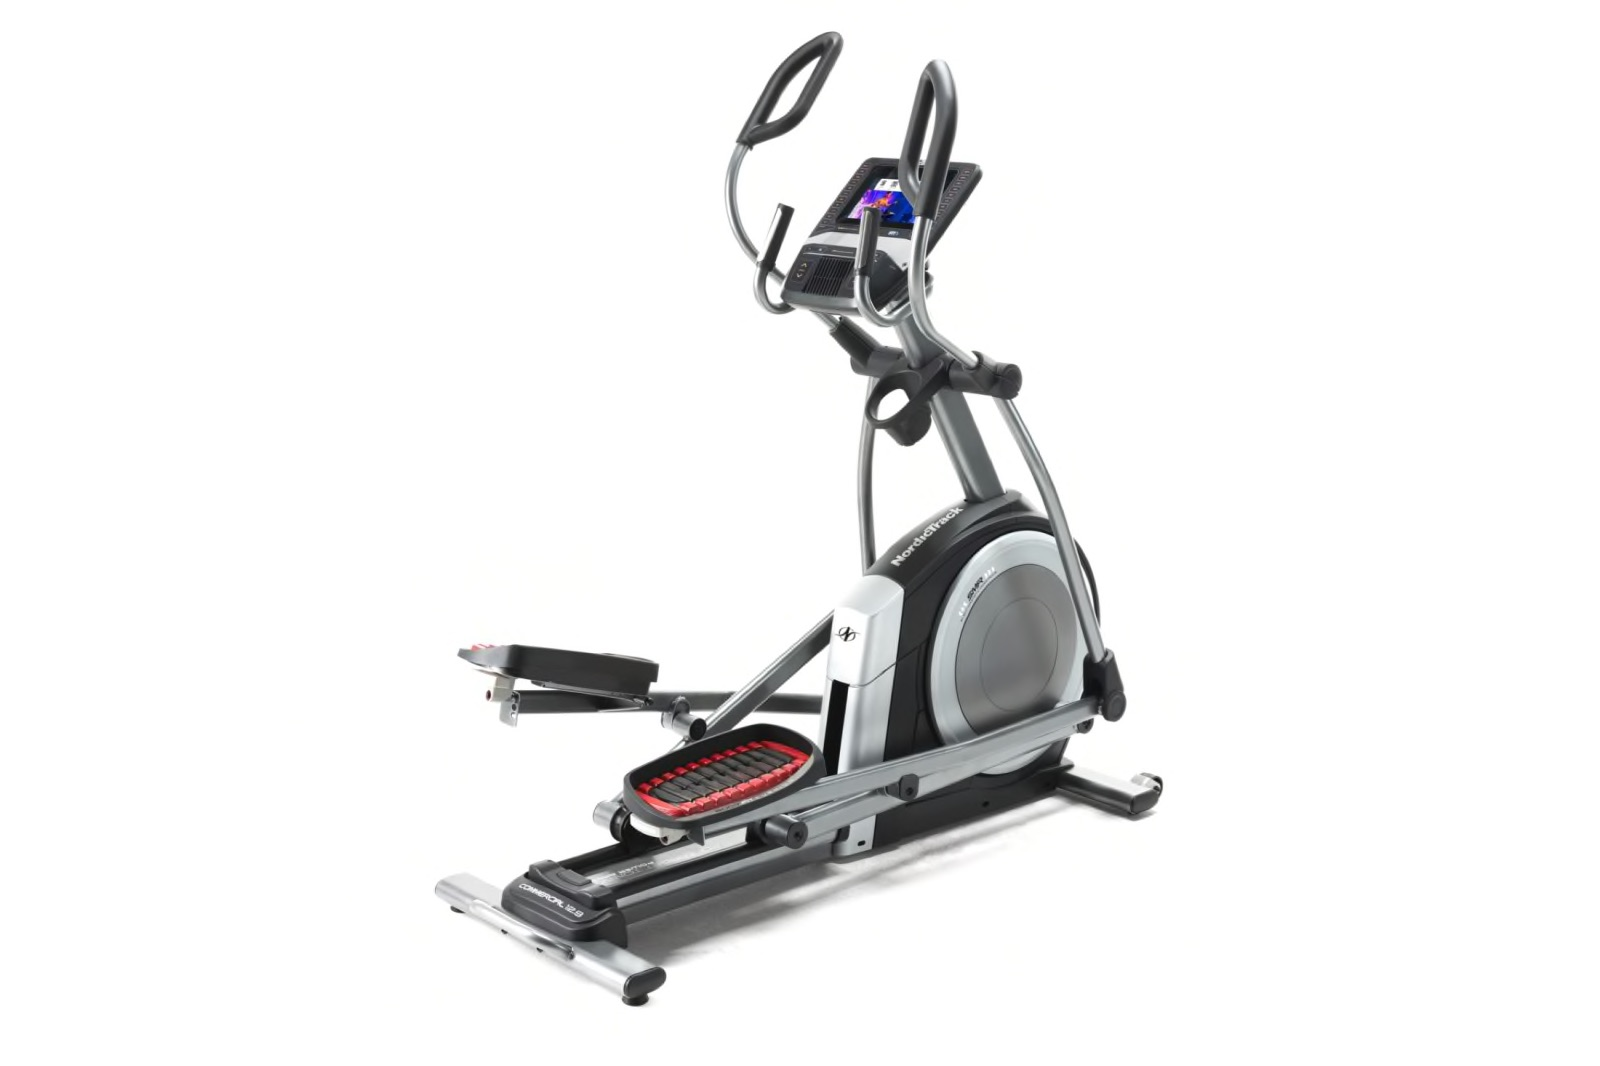 NordicTrack Elliptical at Amazon